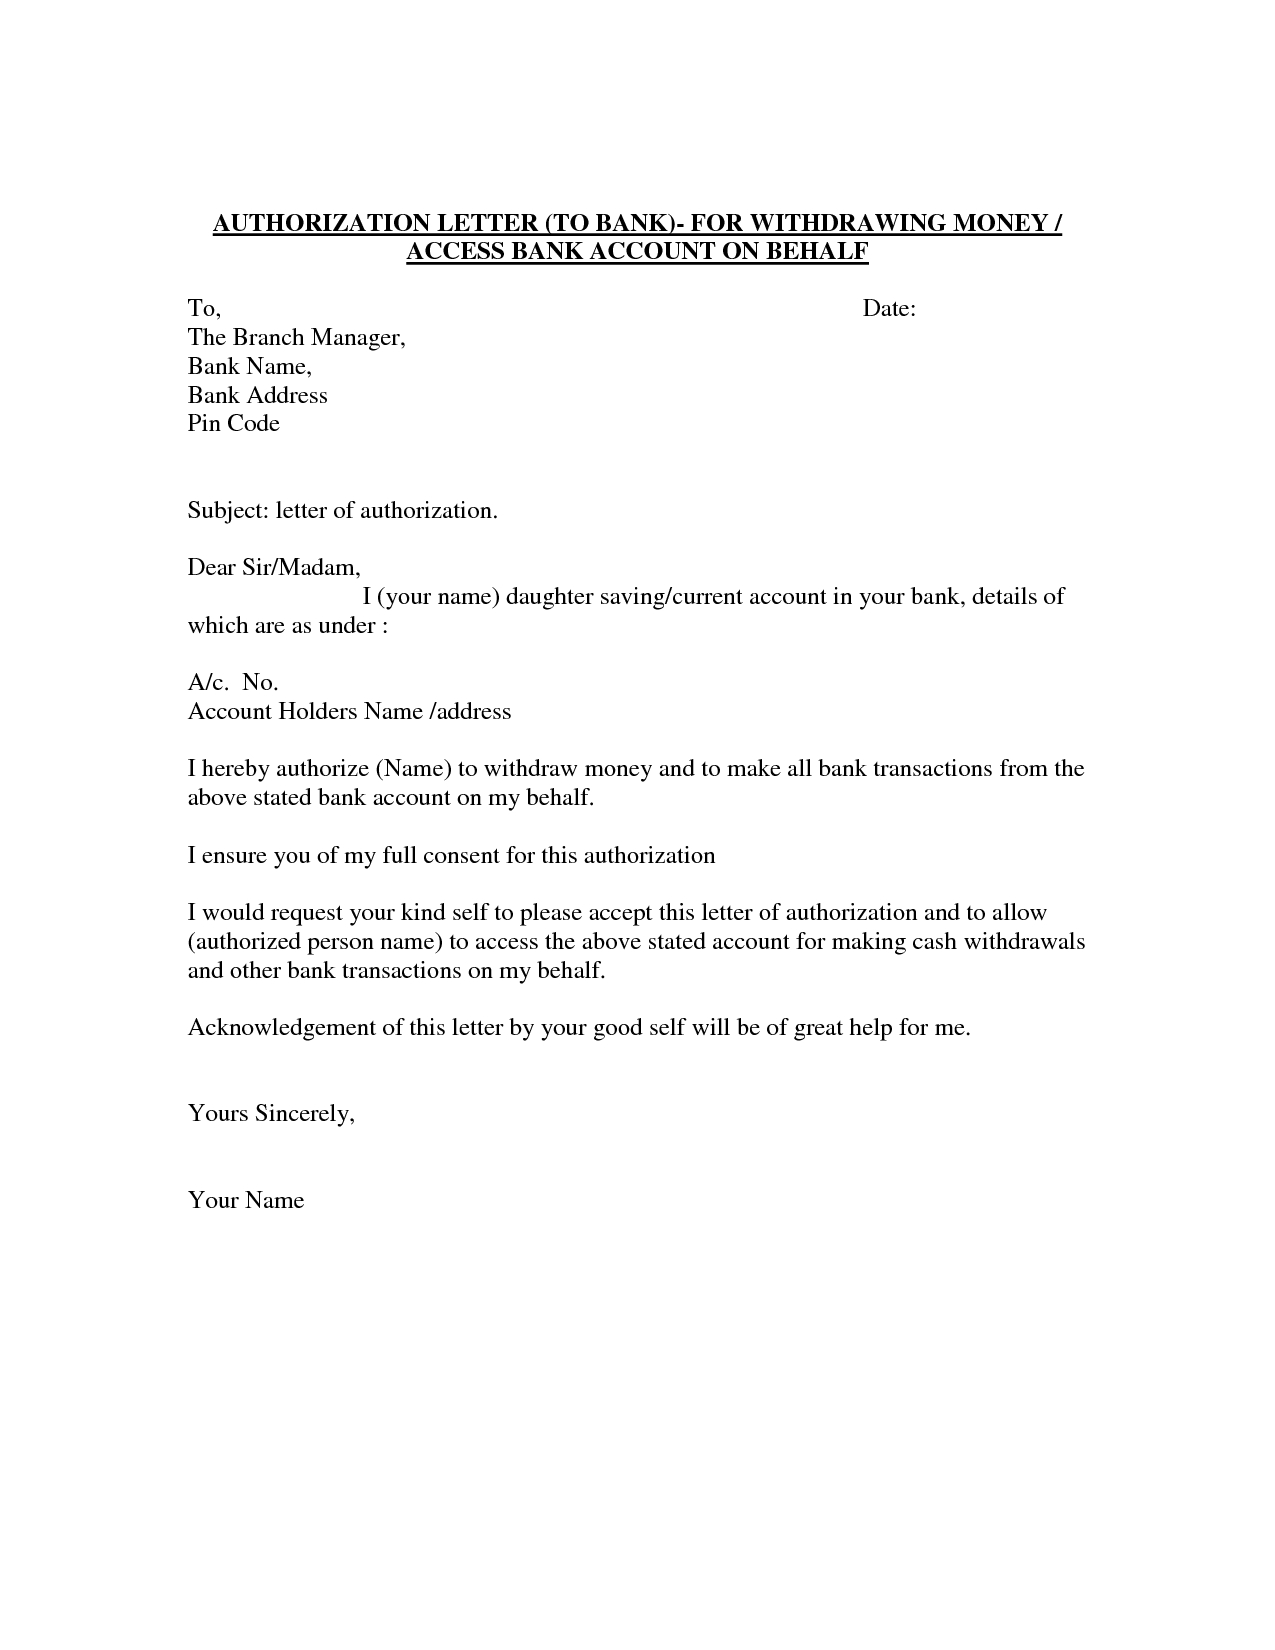 audit confirmation letter template authorization letter template best car galleryformal letter